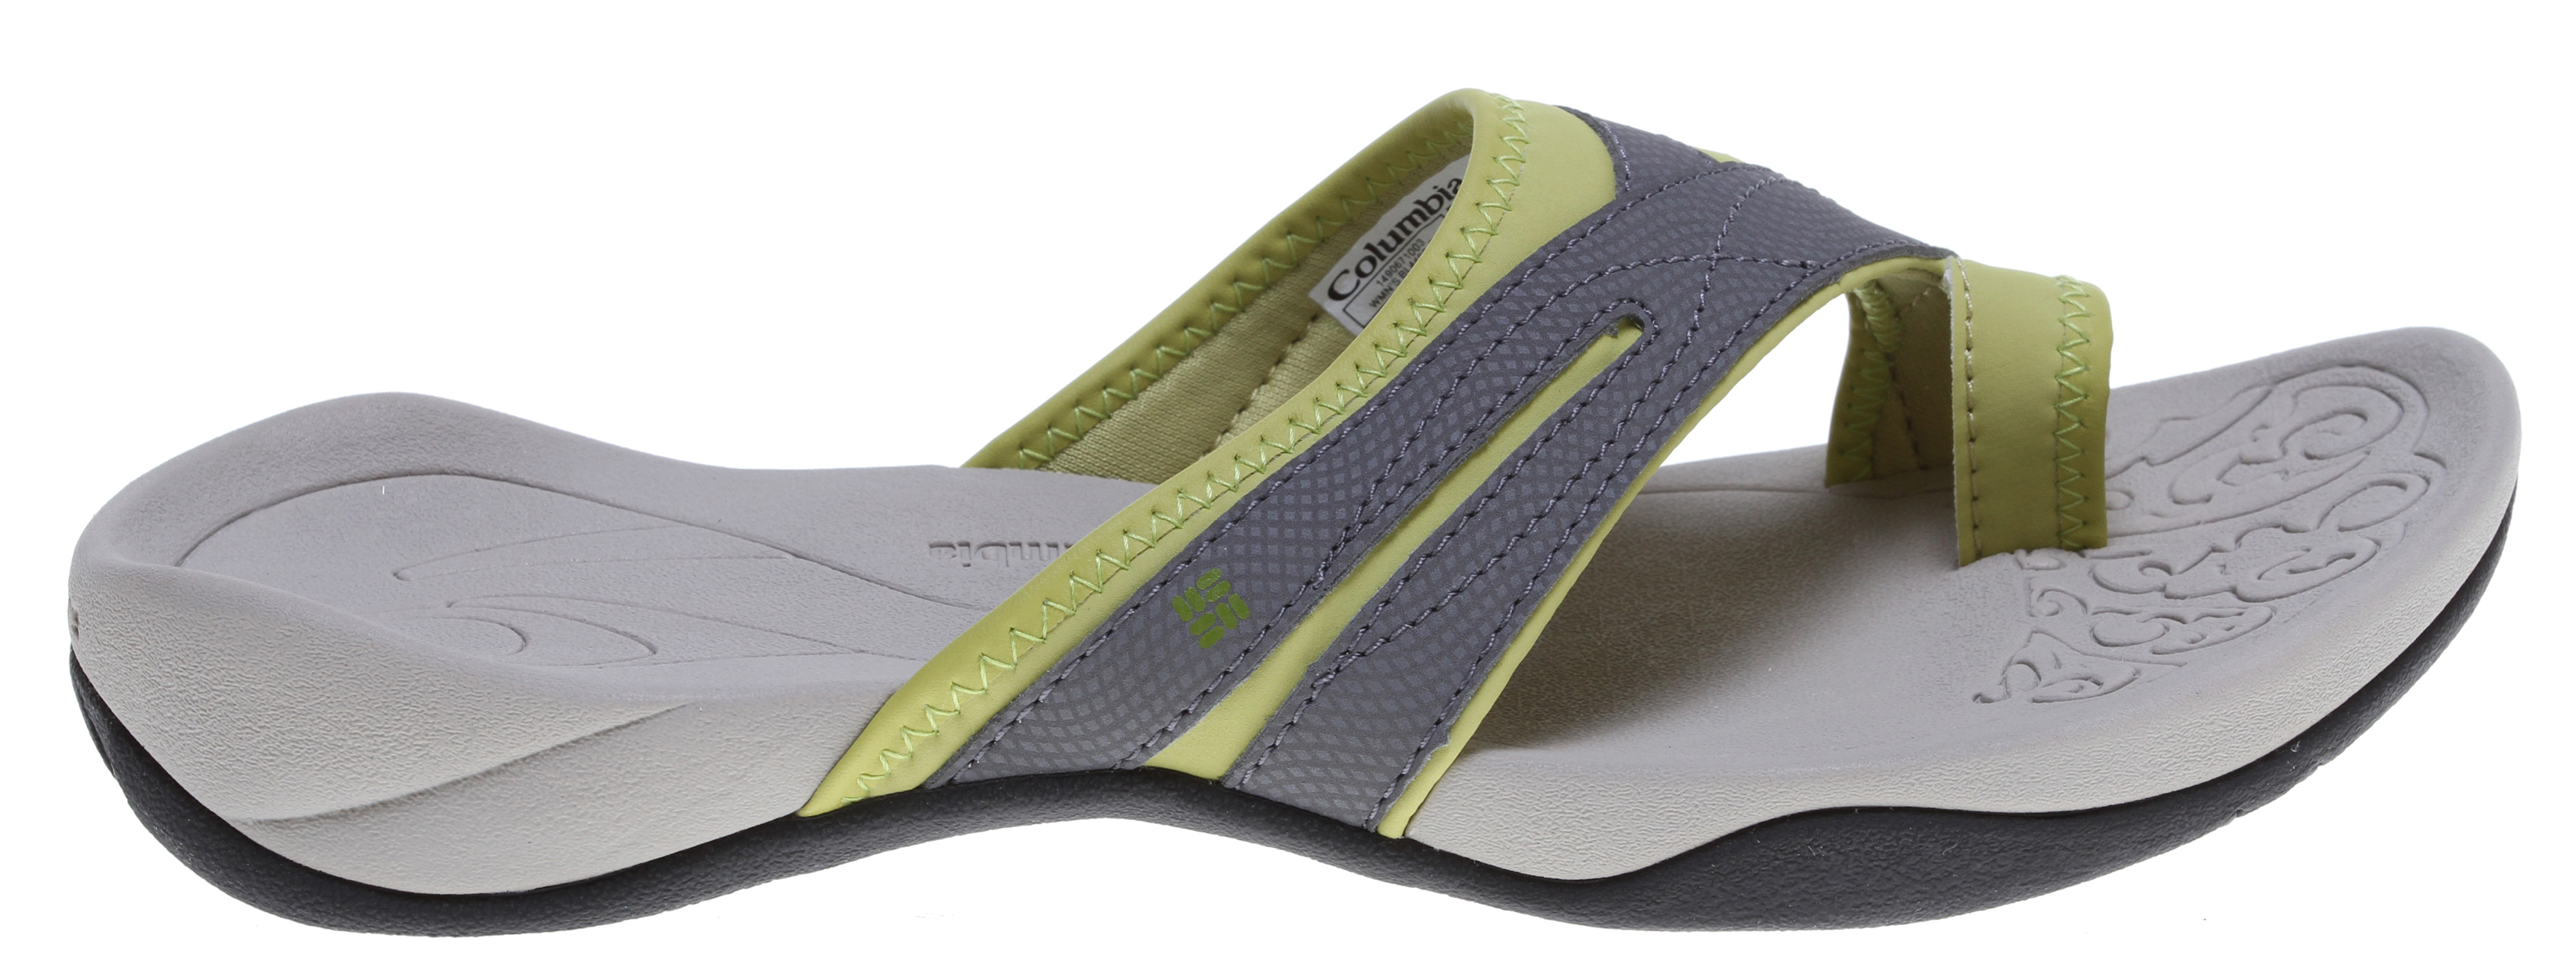 Surf Lightweight and cozy, this stylish toe-wrap sandal is ideal for staying comfortable during active summer days. * Techlite lightweight cushioned midsole * Omni-Grip high traction wet grip rubber * Synthetic leather upper * Hydrophobic lining * Weight: size 7, 1/2 pair = 5.7 oz/161.59g * Imported * Non-marking wet traction rubber - $26.95